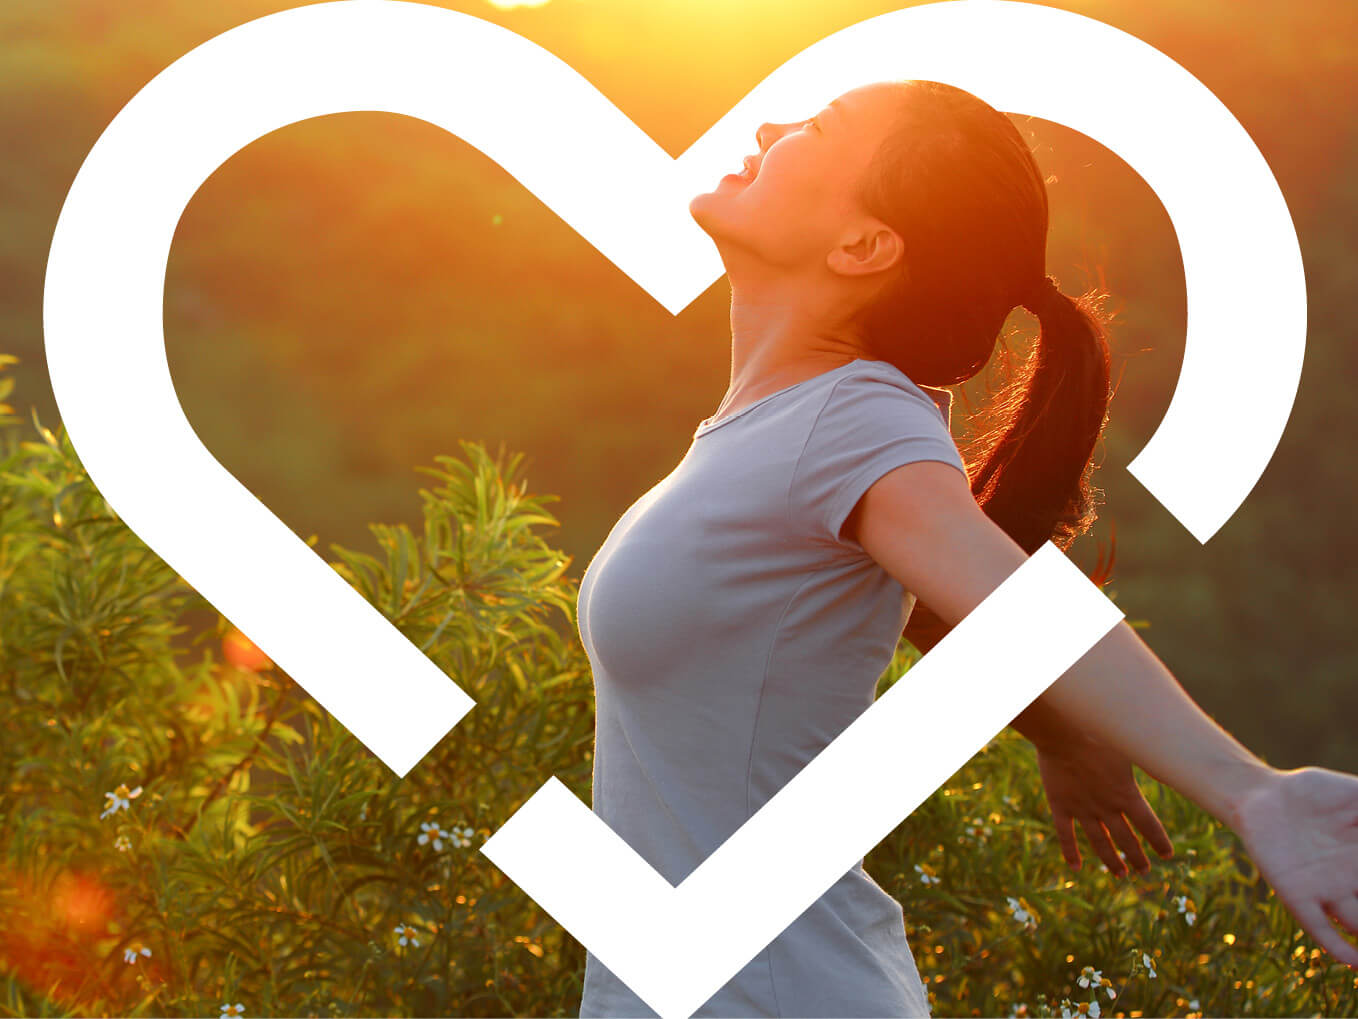 Individual smiling and posing with a sunset backdrop, surrounded by heart logo